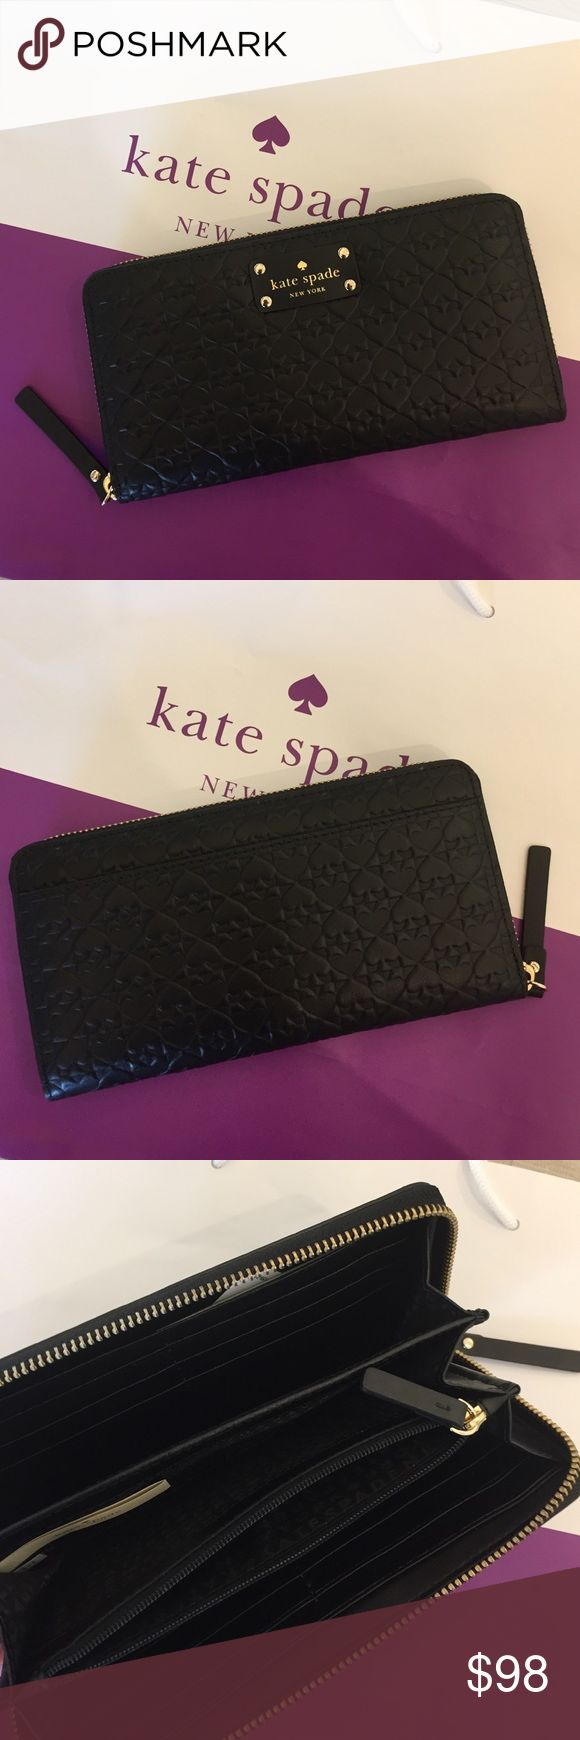 ♠️♠️♠️♠️♠️print Kate Spate wallet. NWT Brand new Kate Spade wallet with spades print ♠️♠️♠️♠️♠️♠️♠️. No trade please kate spade Bags Wallets